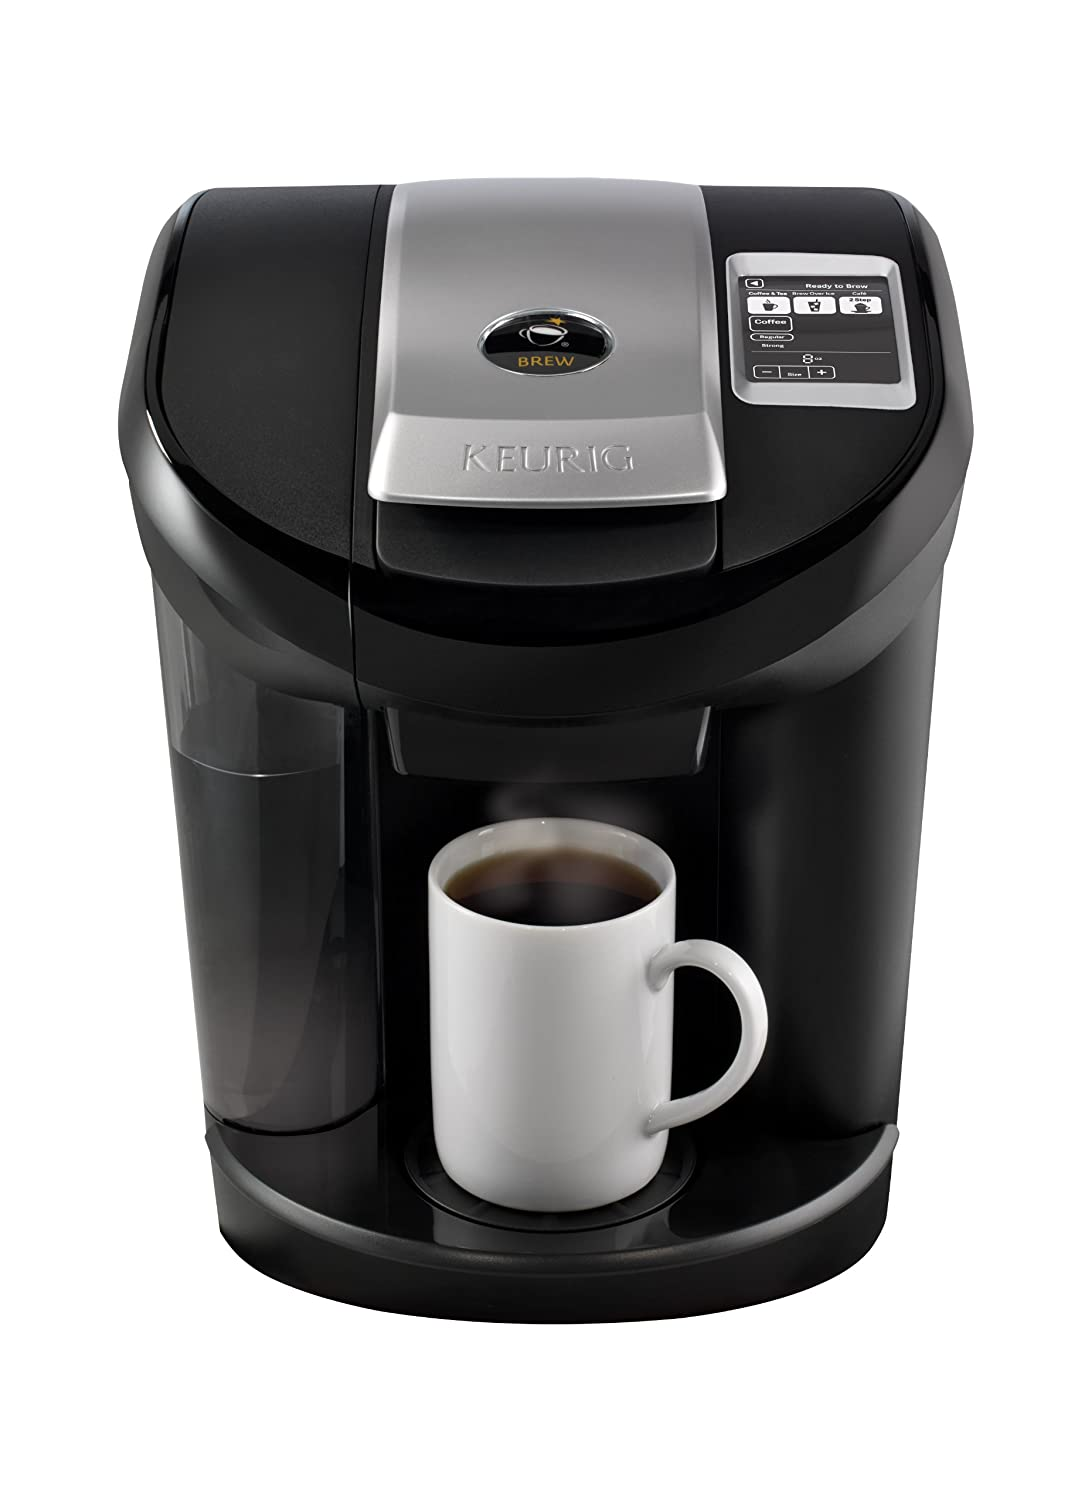 Chef Selection Coffee Maker Not Working : Keurig Touch Screen Vue V600 Single Cup Brewing System Coffee Maker-DEMO/DSPLY!!